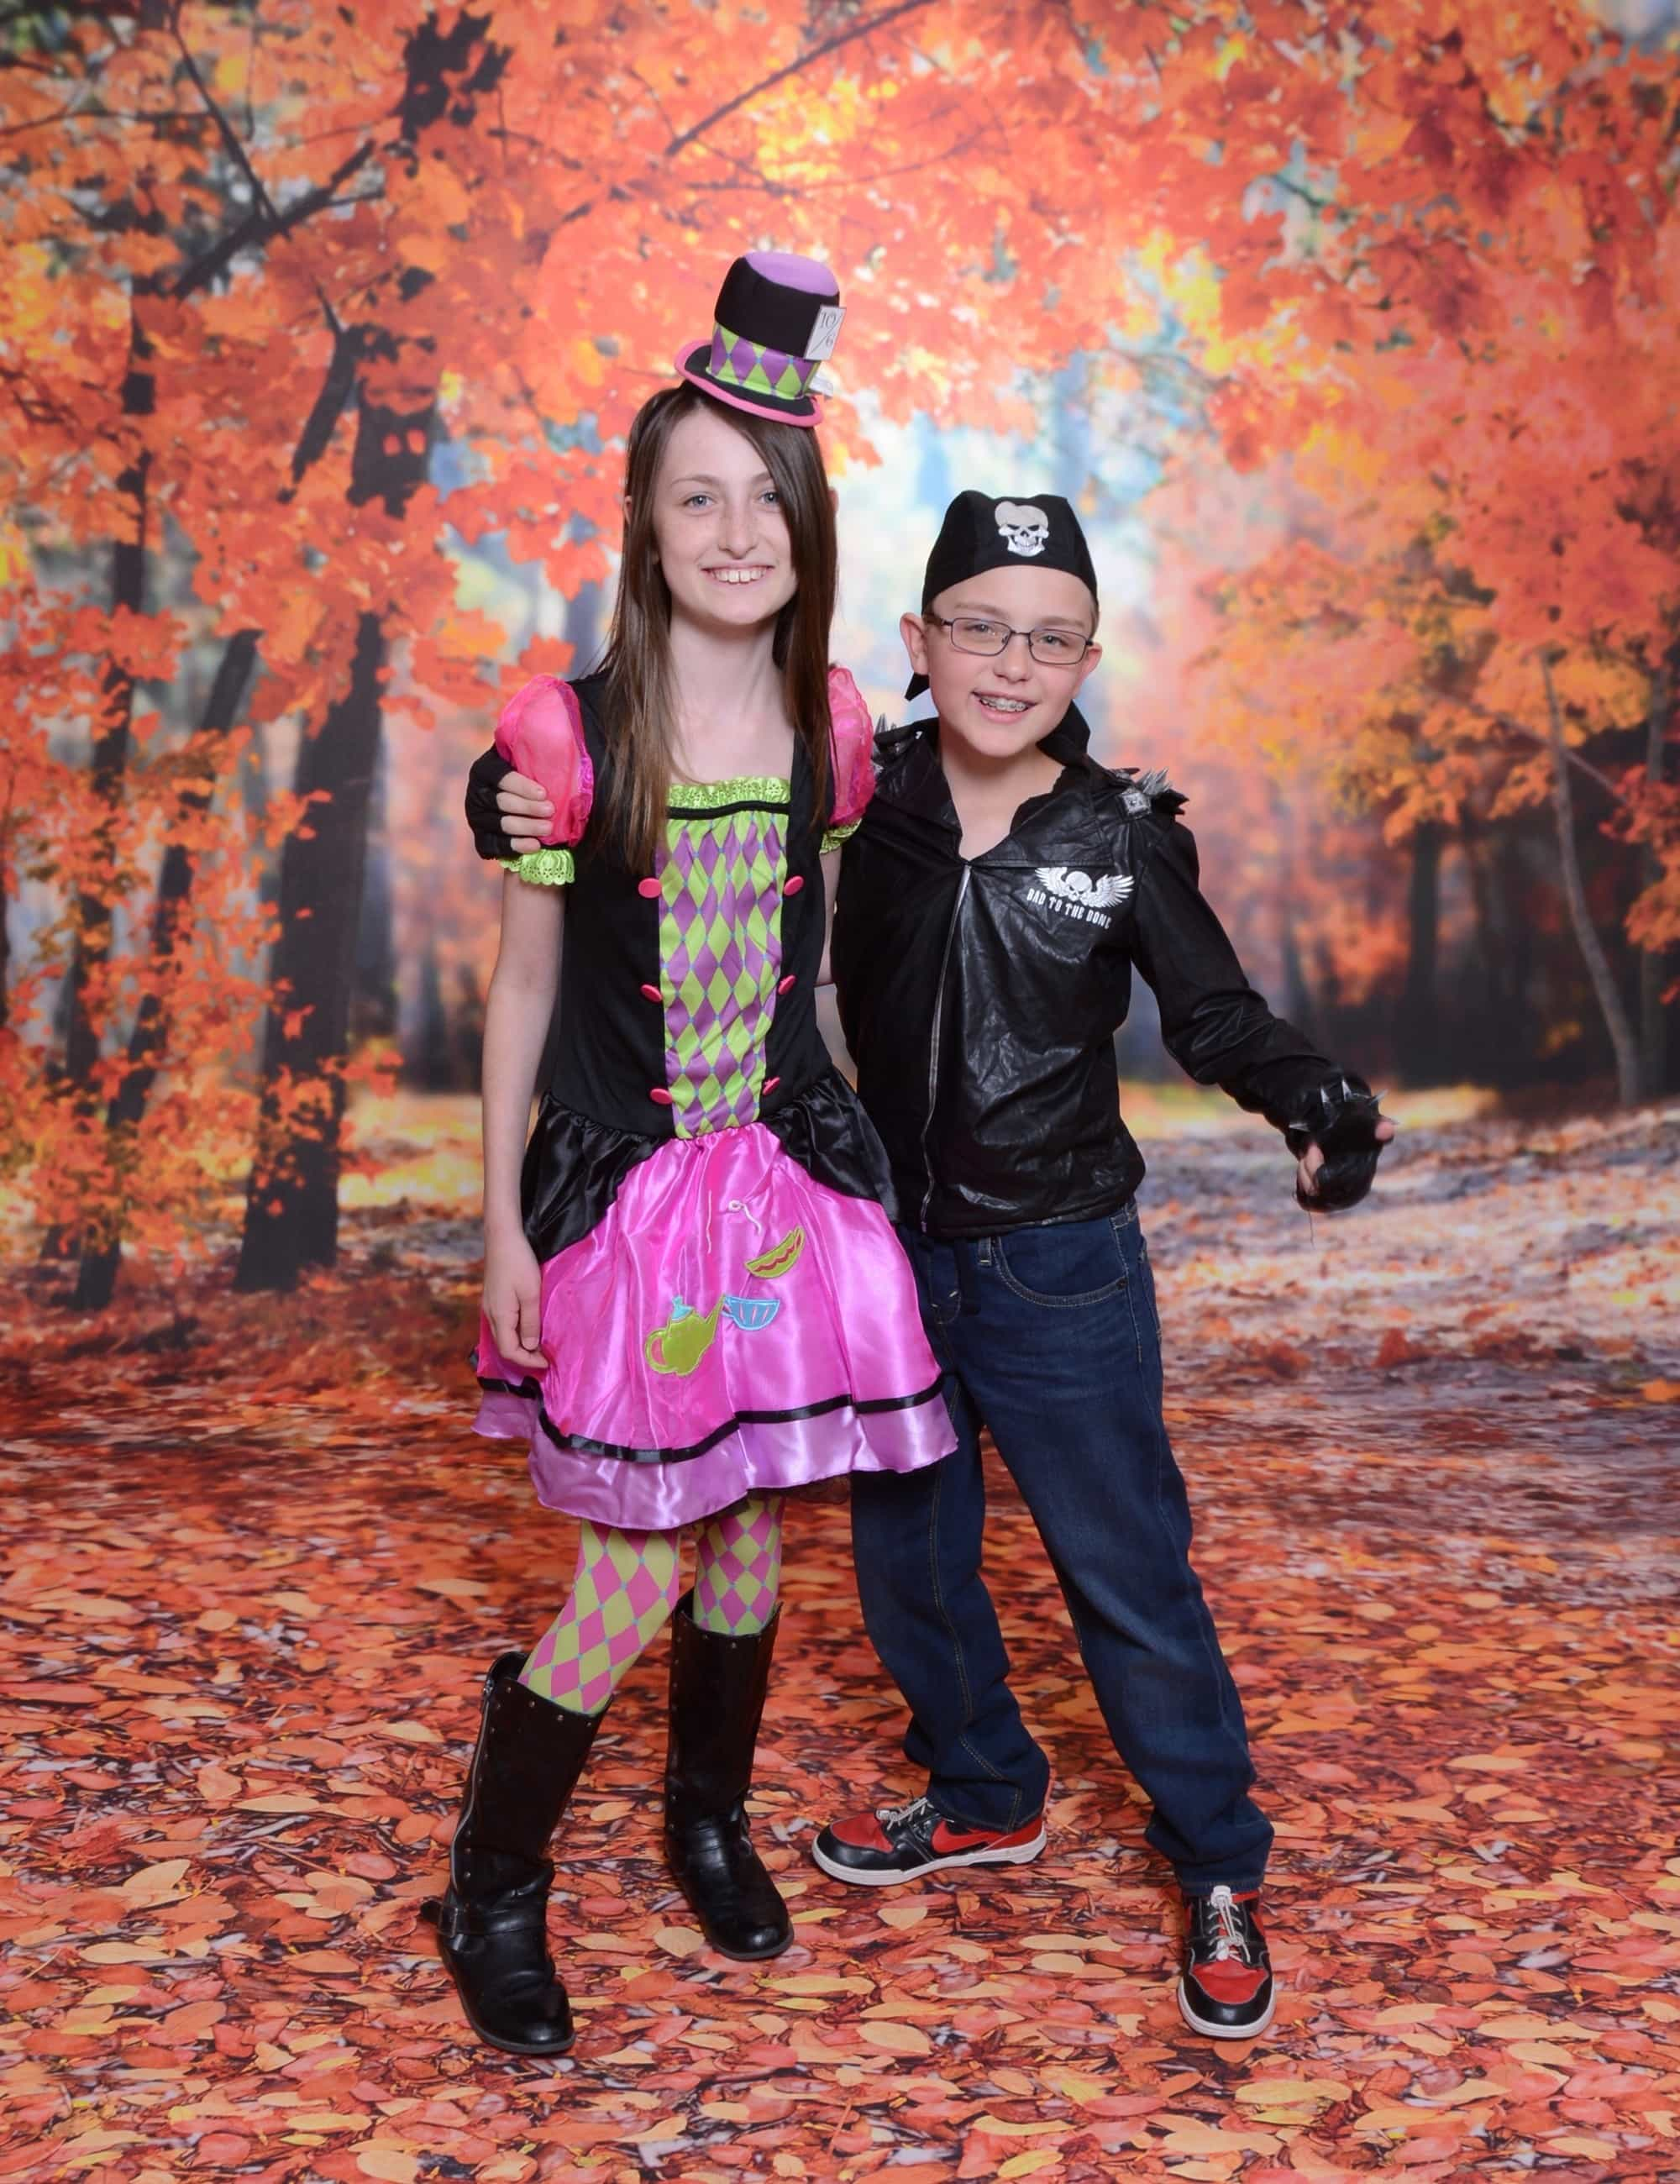 Celebrate fall with Halloween photos from Portrait Studio